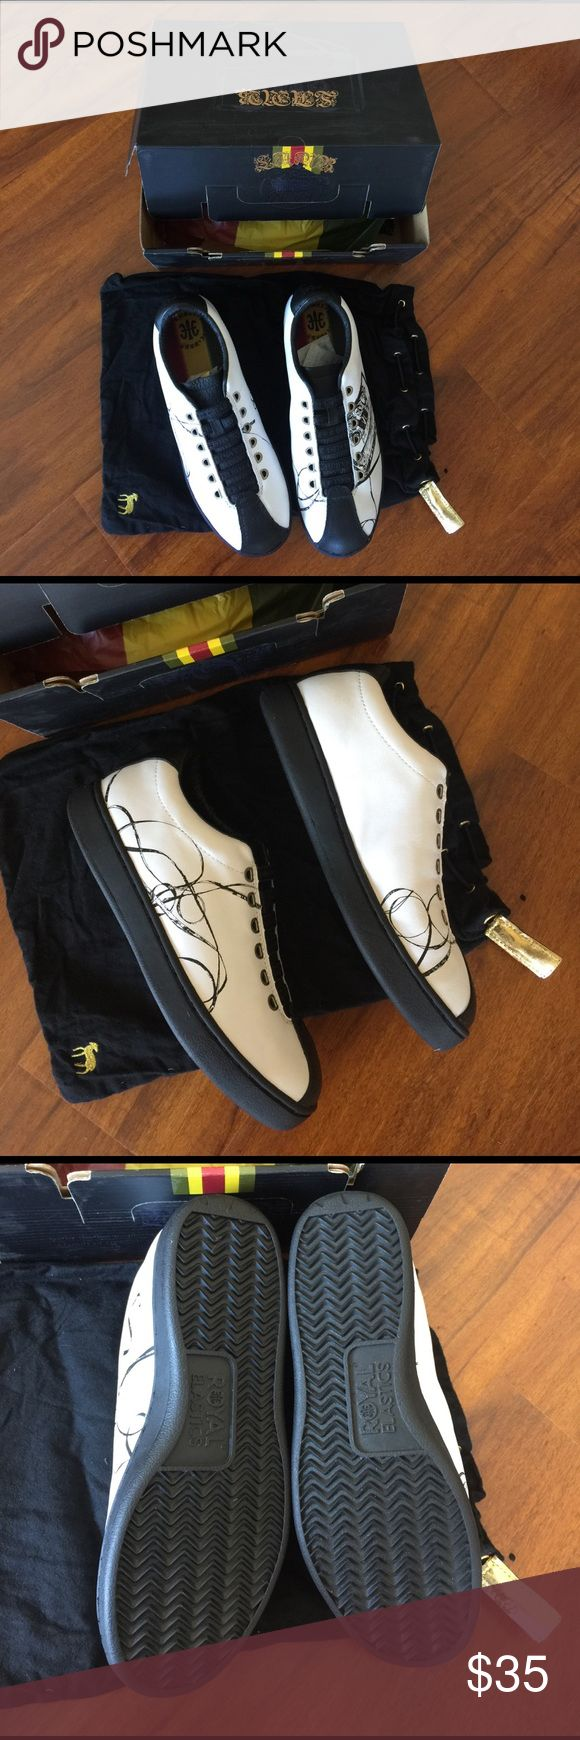 New L.A.M.B royal elastics white women sneaker uk 6.5 us 8.5 women sneaker white royal elastics music new in the box with dust bag L.A.M.B. Shoes Sneakers